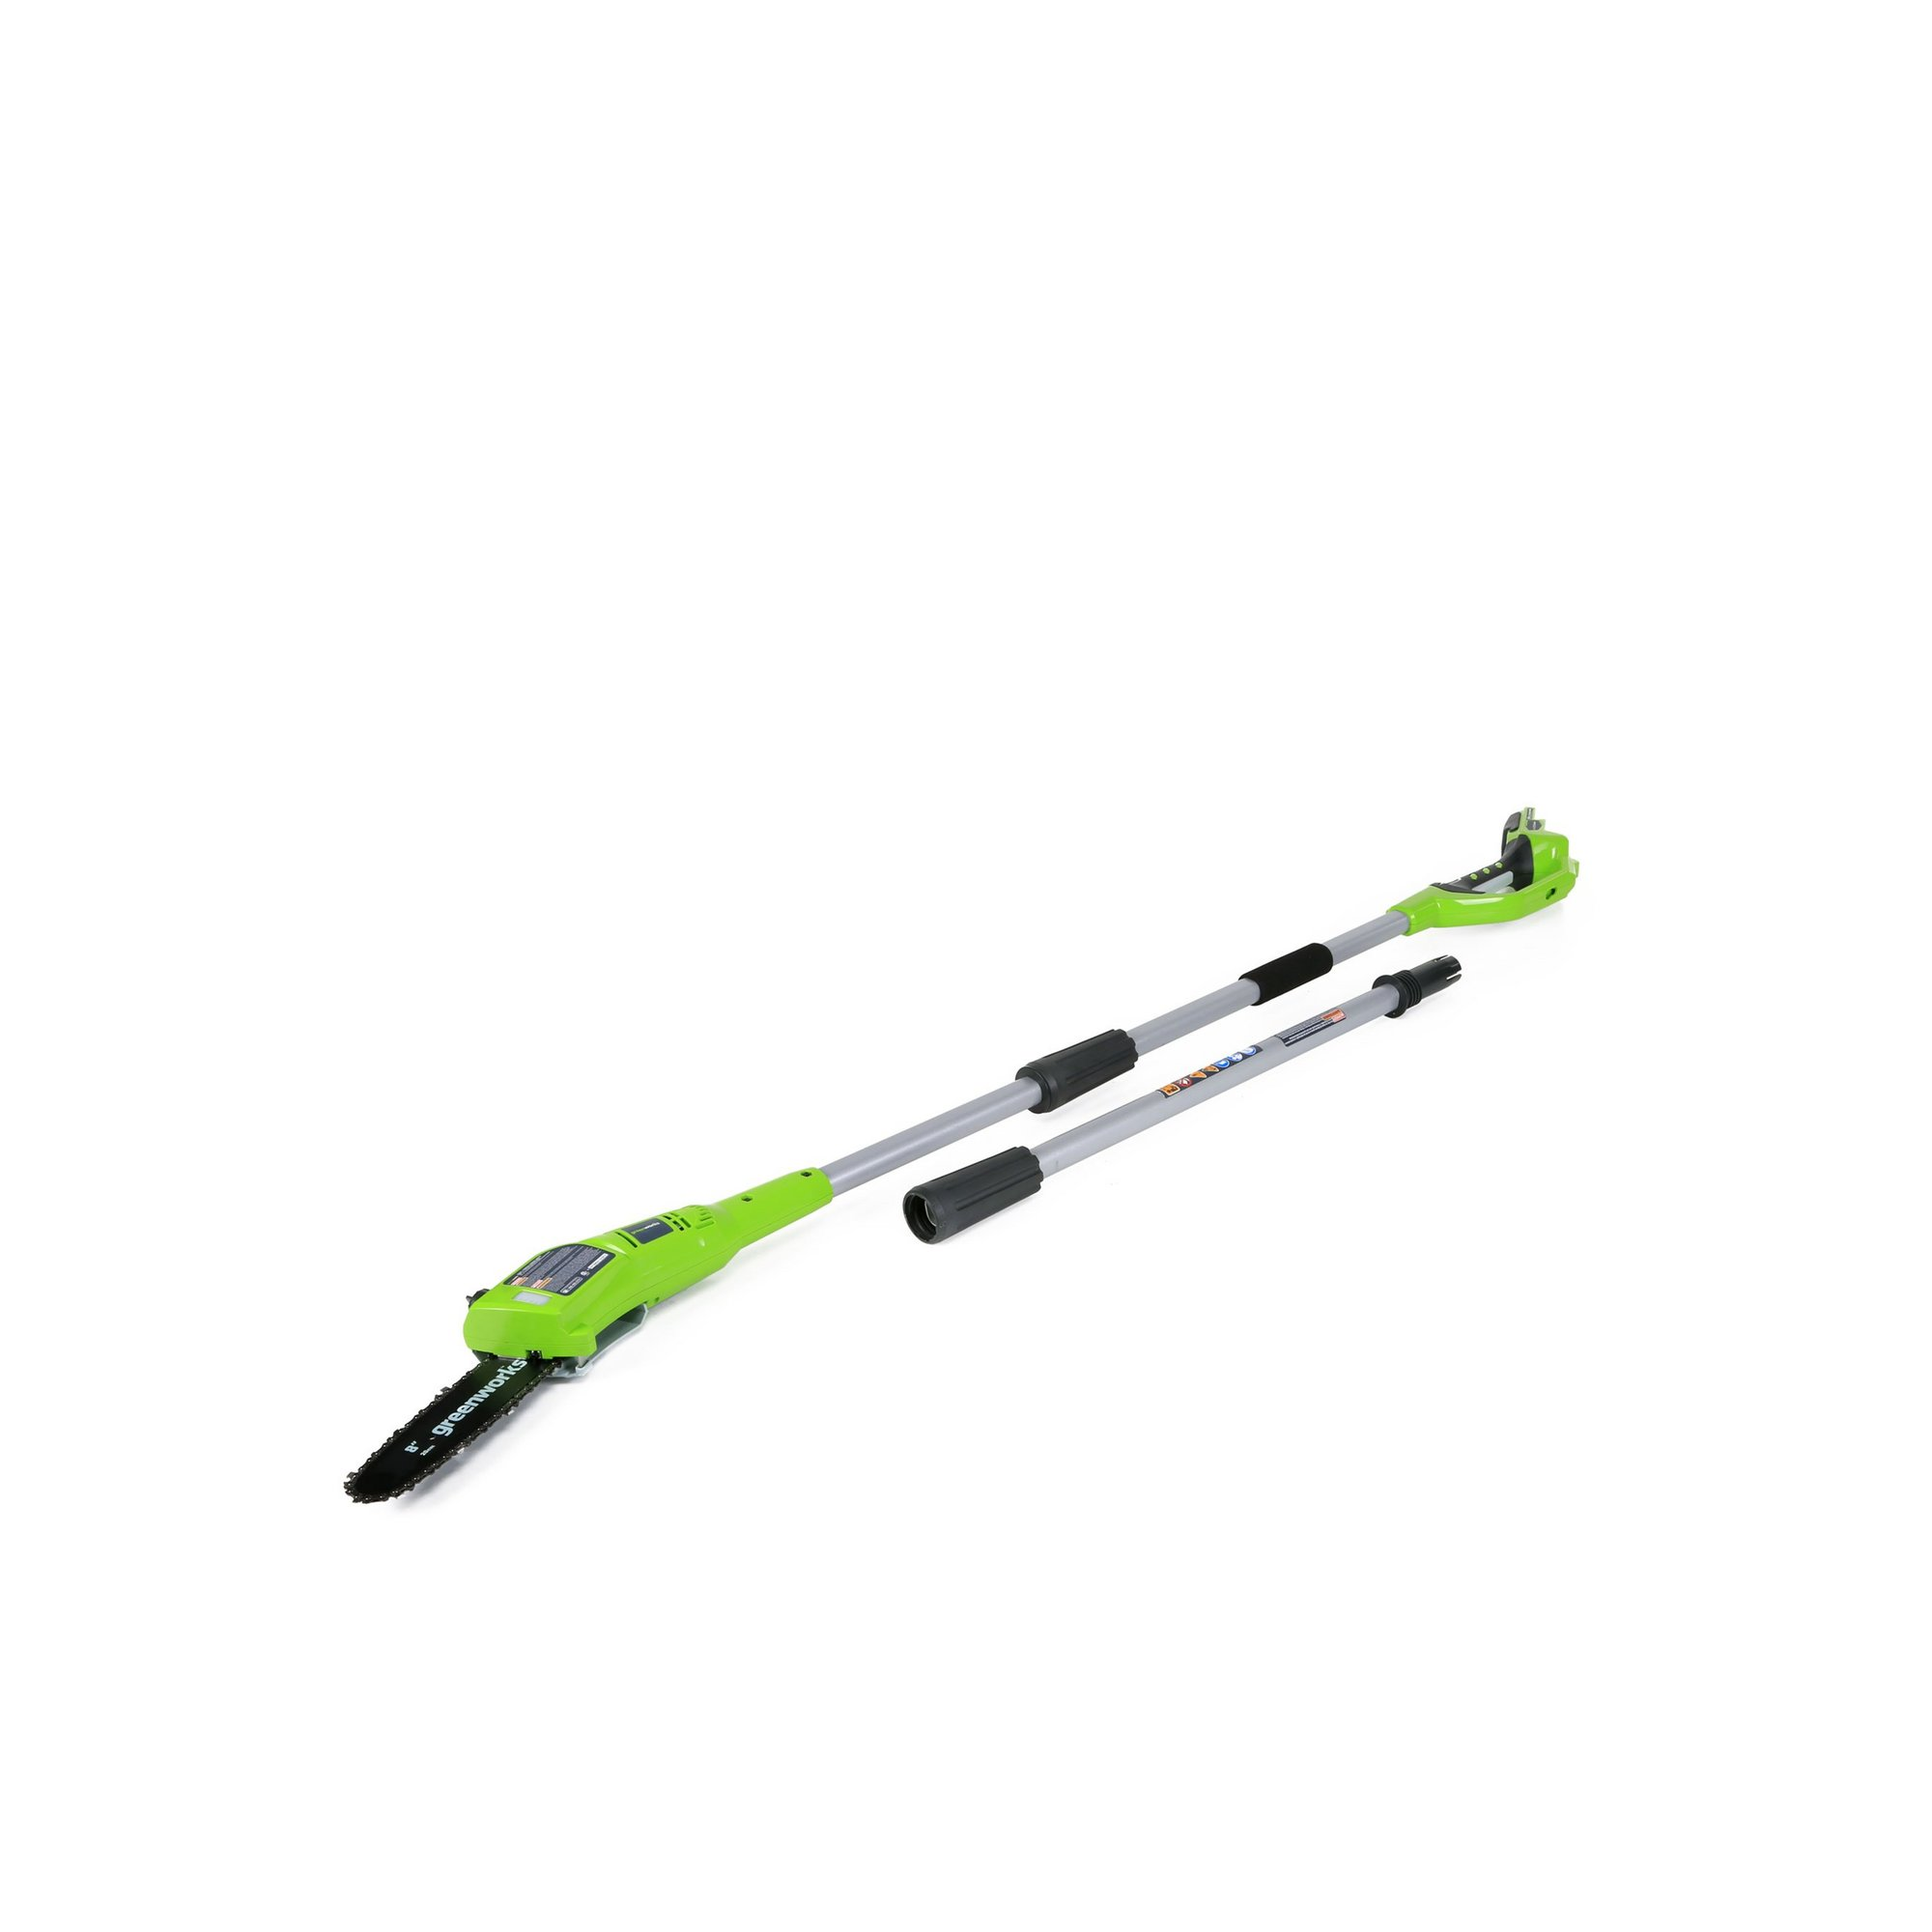 Image of Greenworks 20cm Cordless Polesaw (Tool Only)